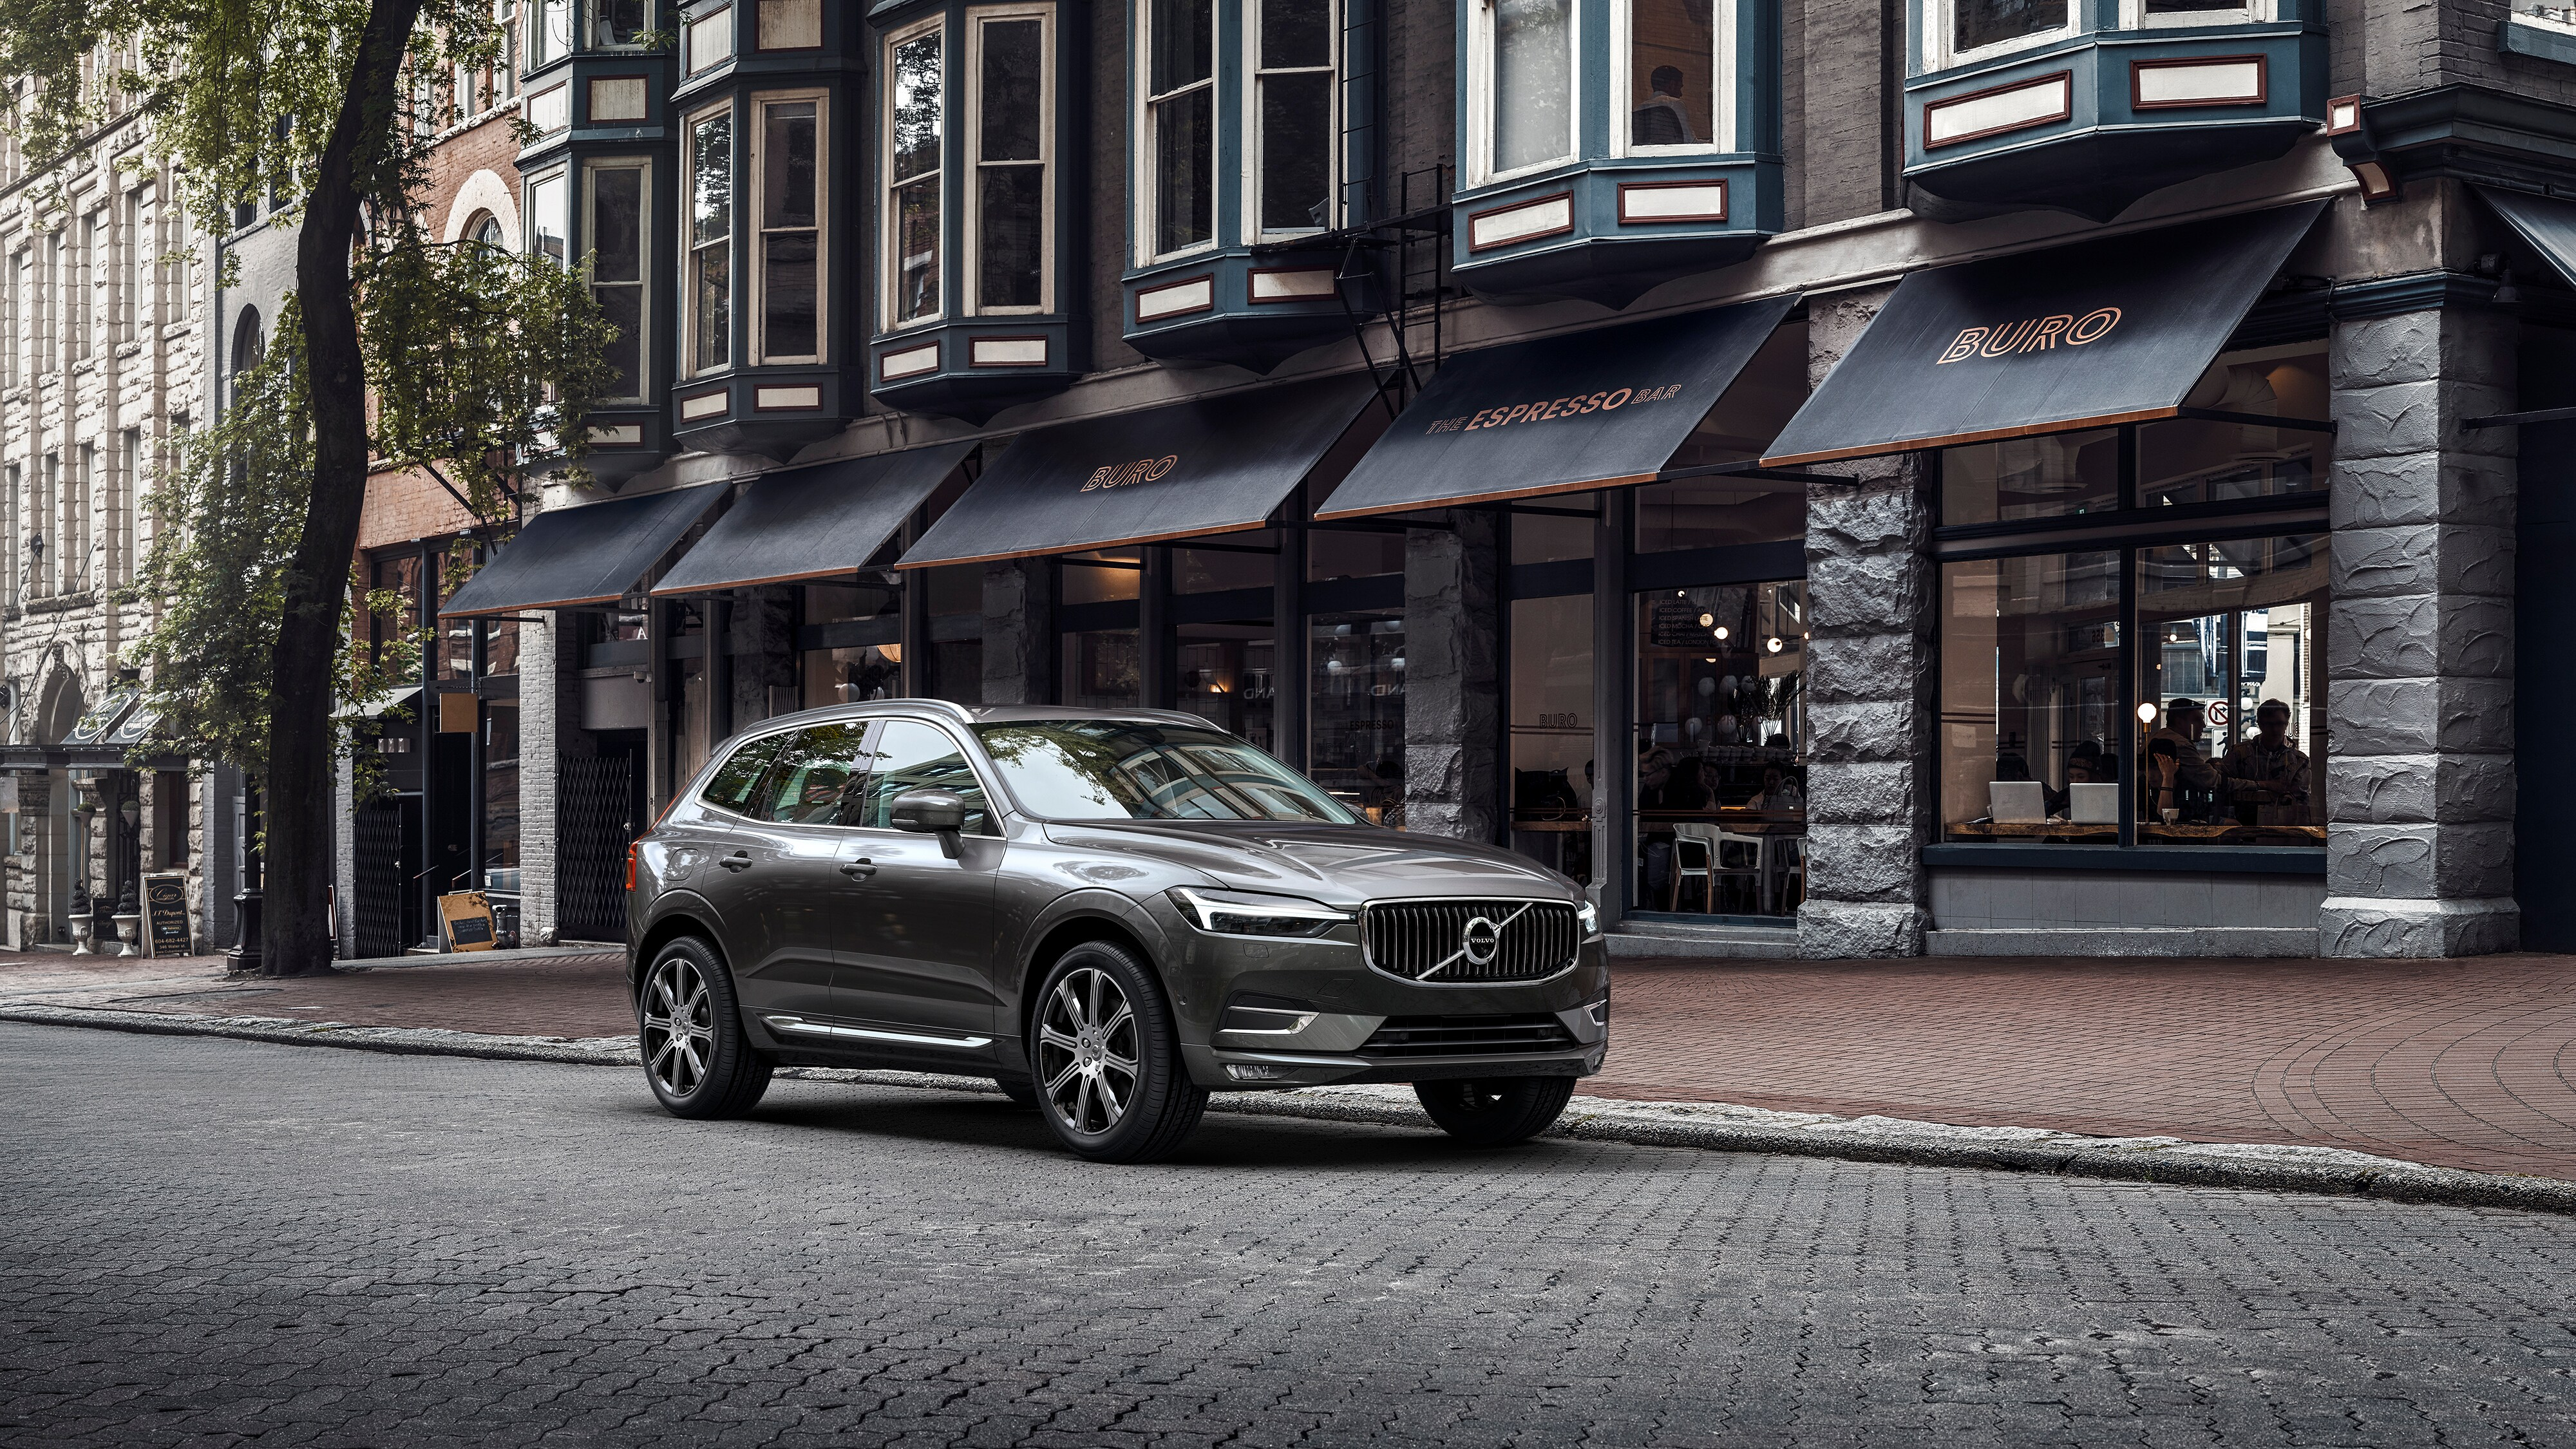 The new Volvo XC60 parked in front of a café